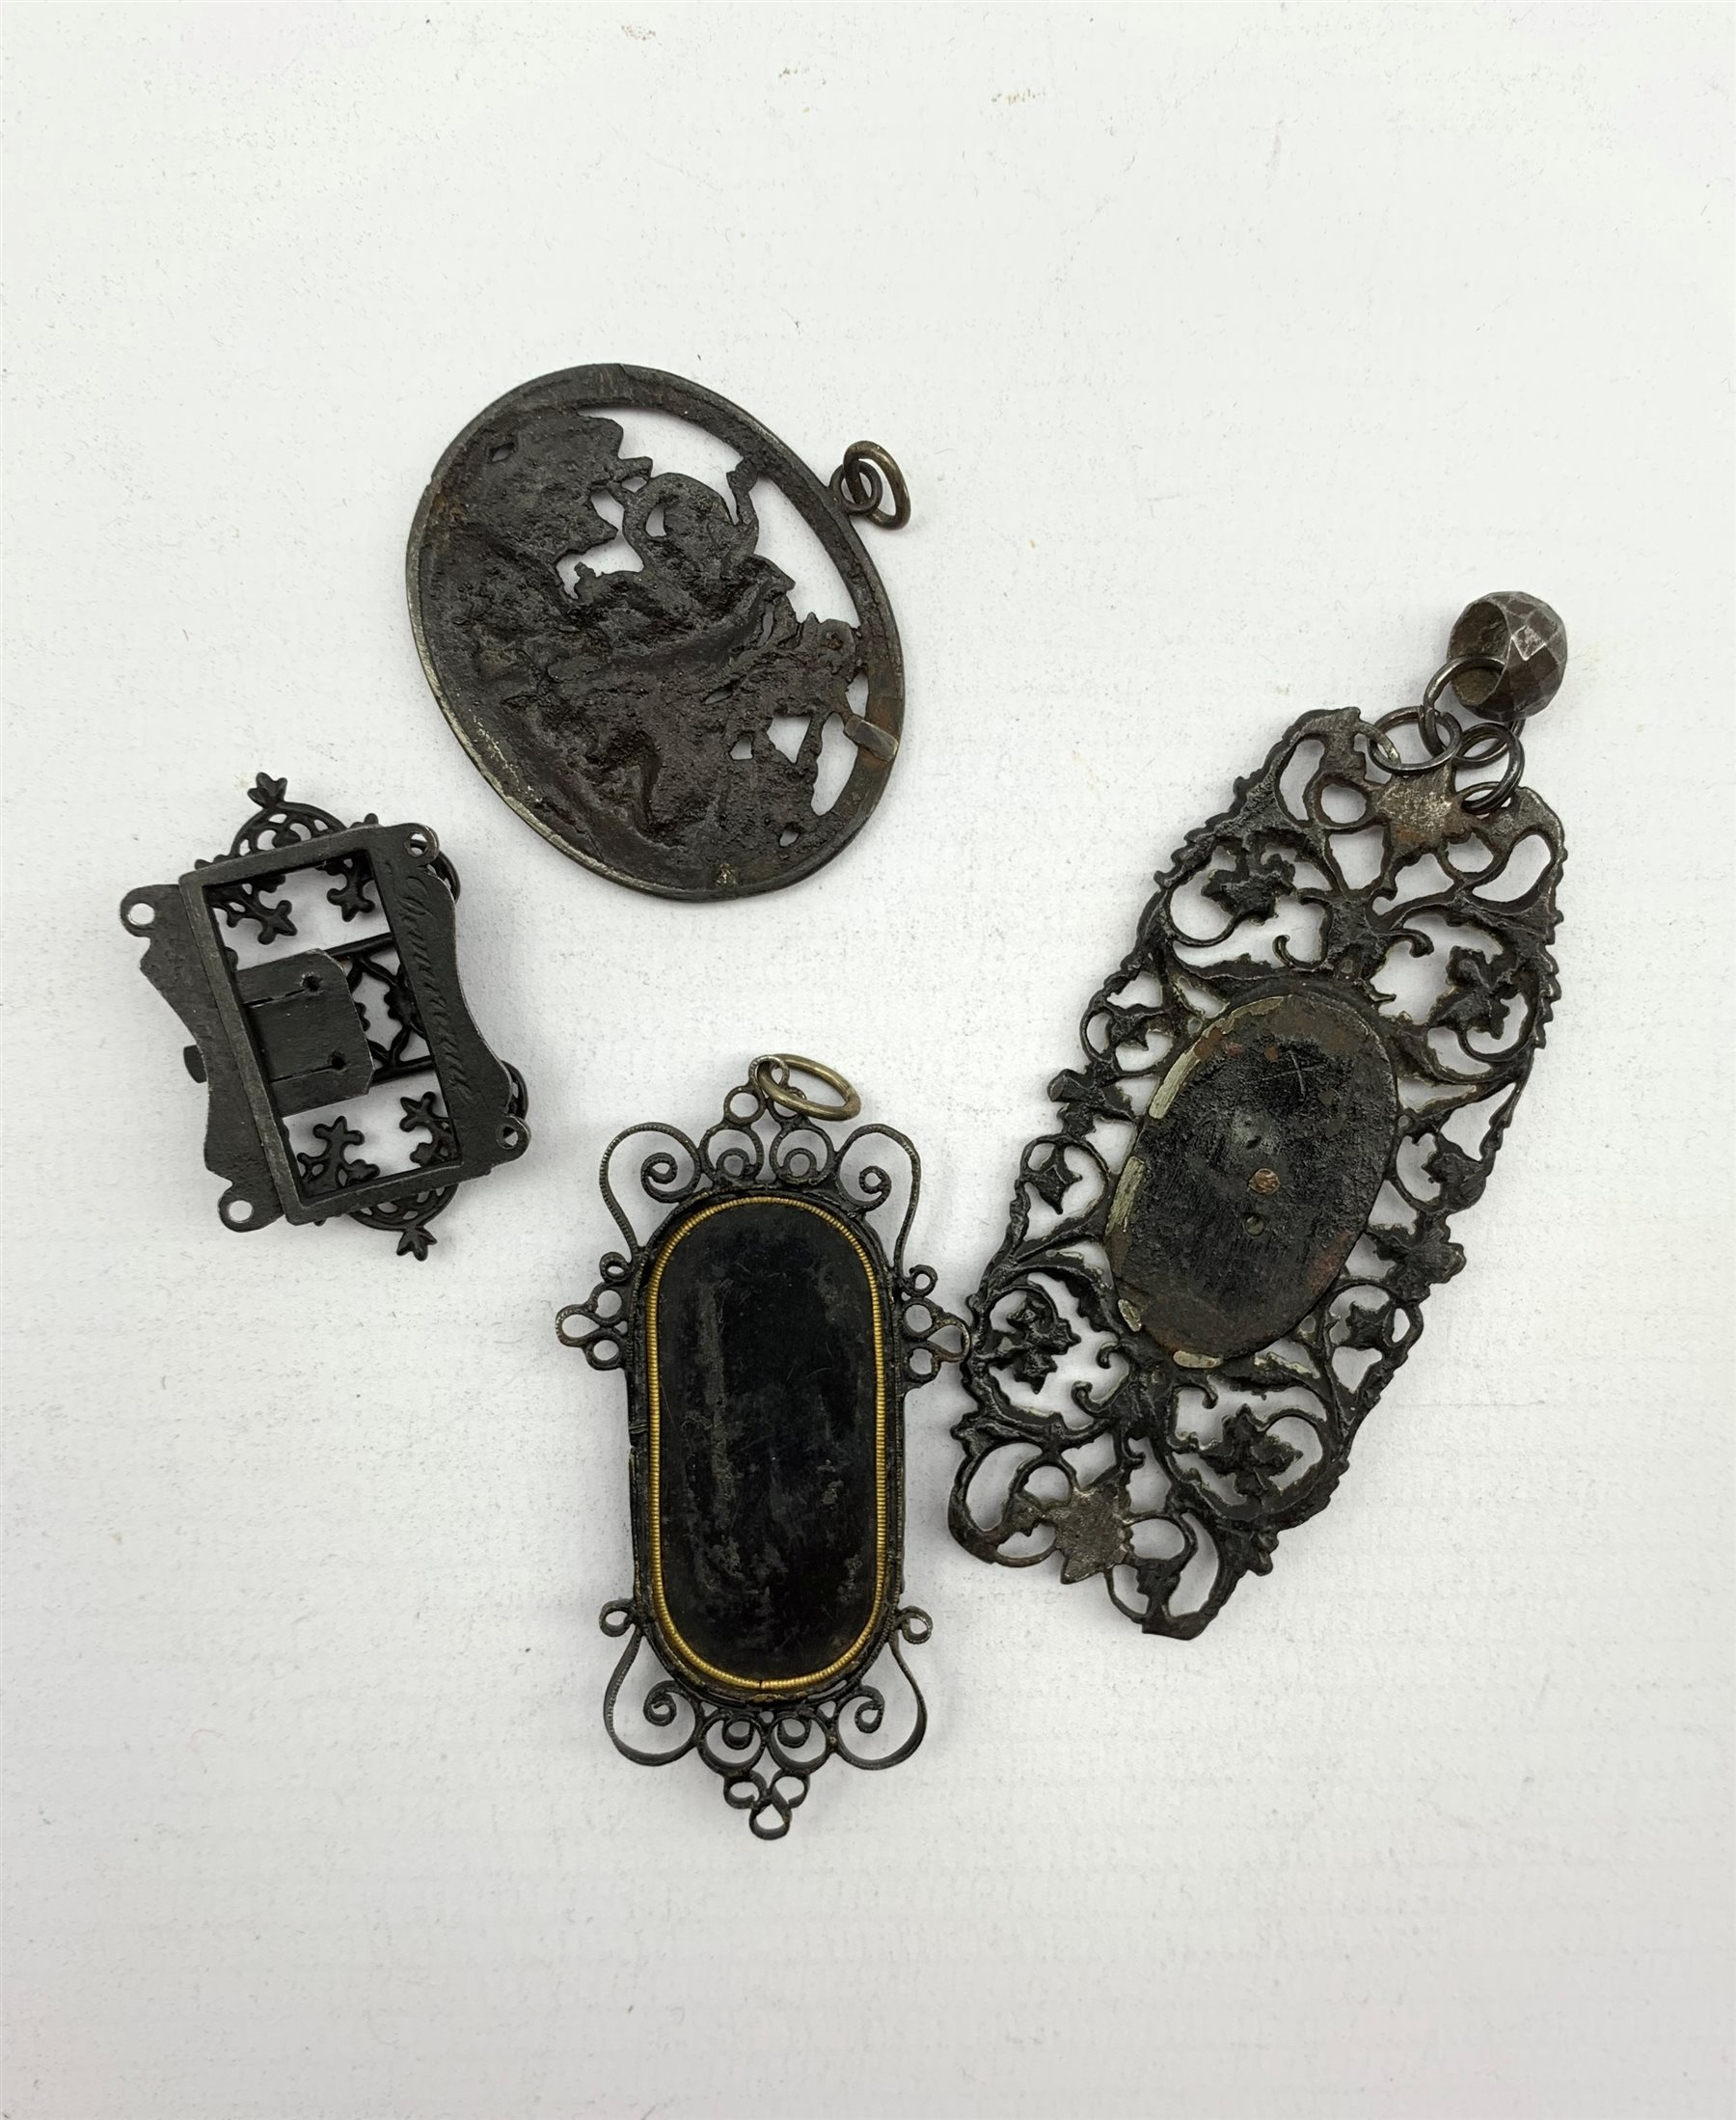 Simeon Pierre Devaranne (1789-1859) Berlin ironwork clasp inscribed 'Devaranne' and three other piec - Image 2 of 3